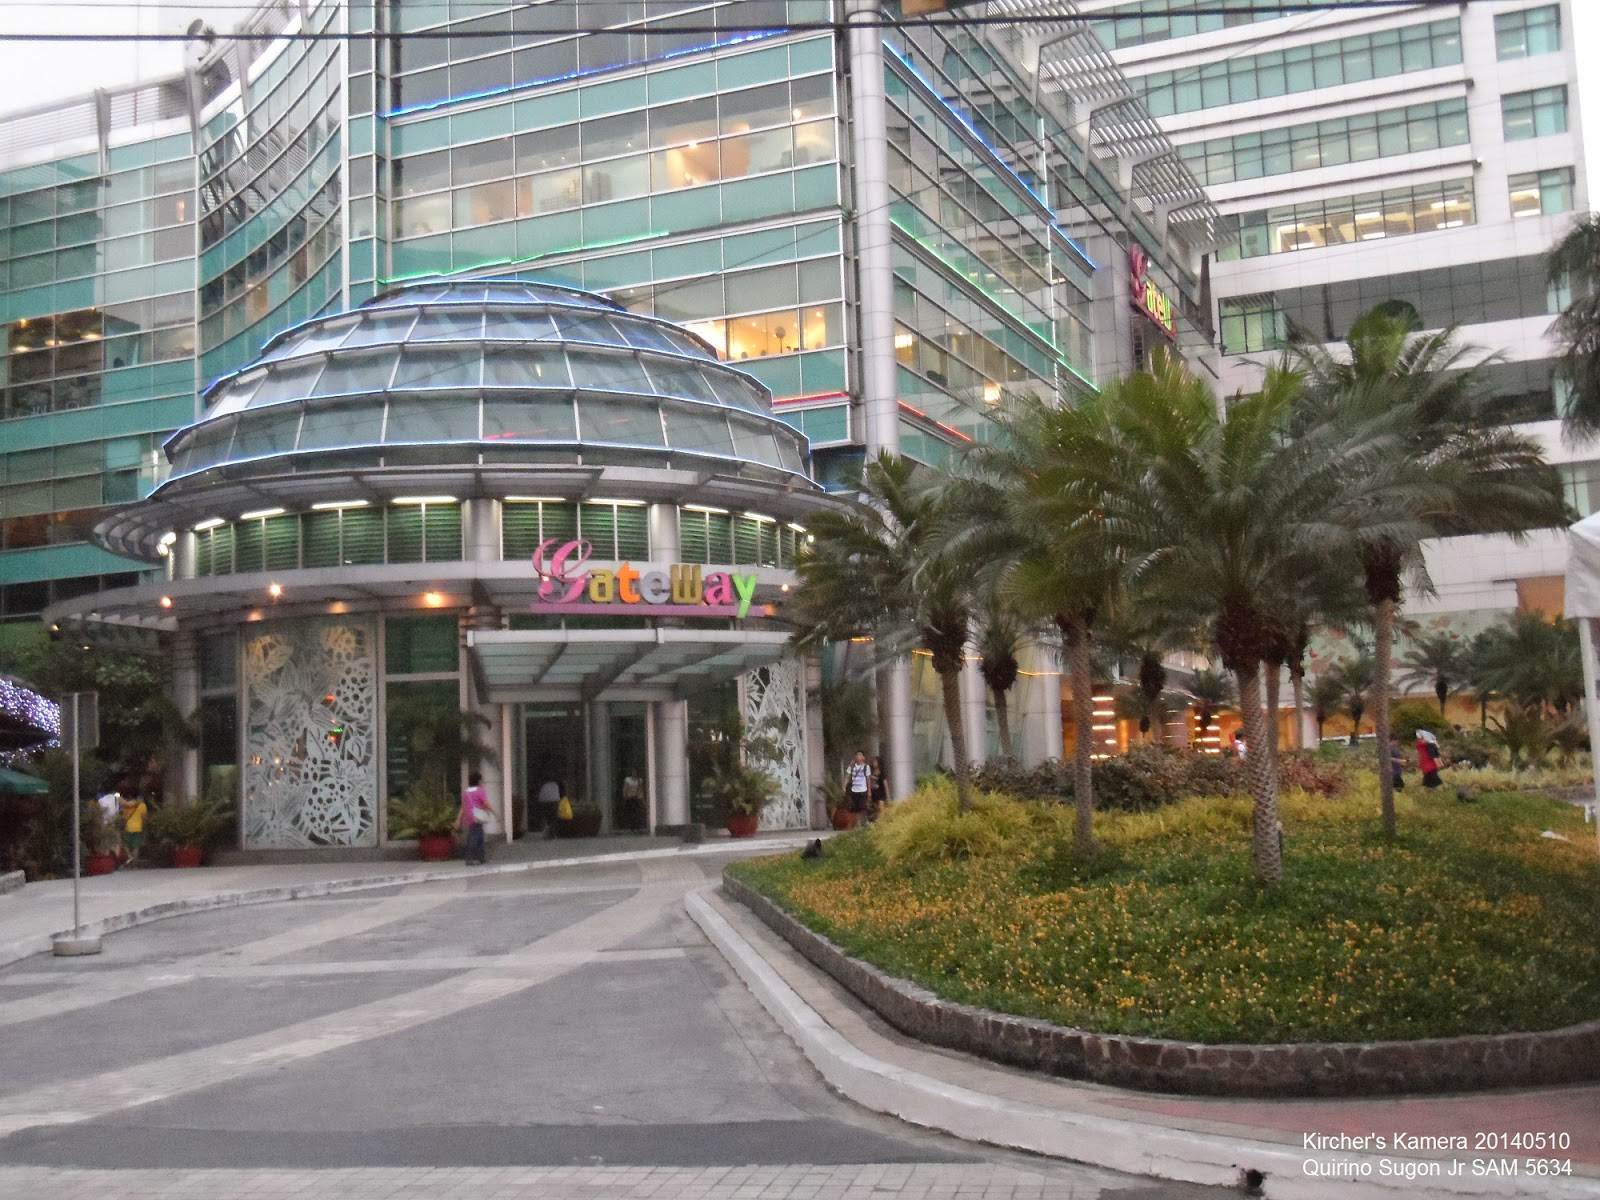 Gareway Mall's main entrance.  On the right are the grass and palm trees. The overall effect is an oasis in the desert.